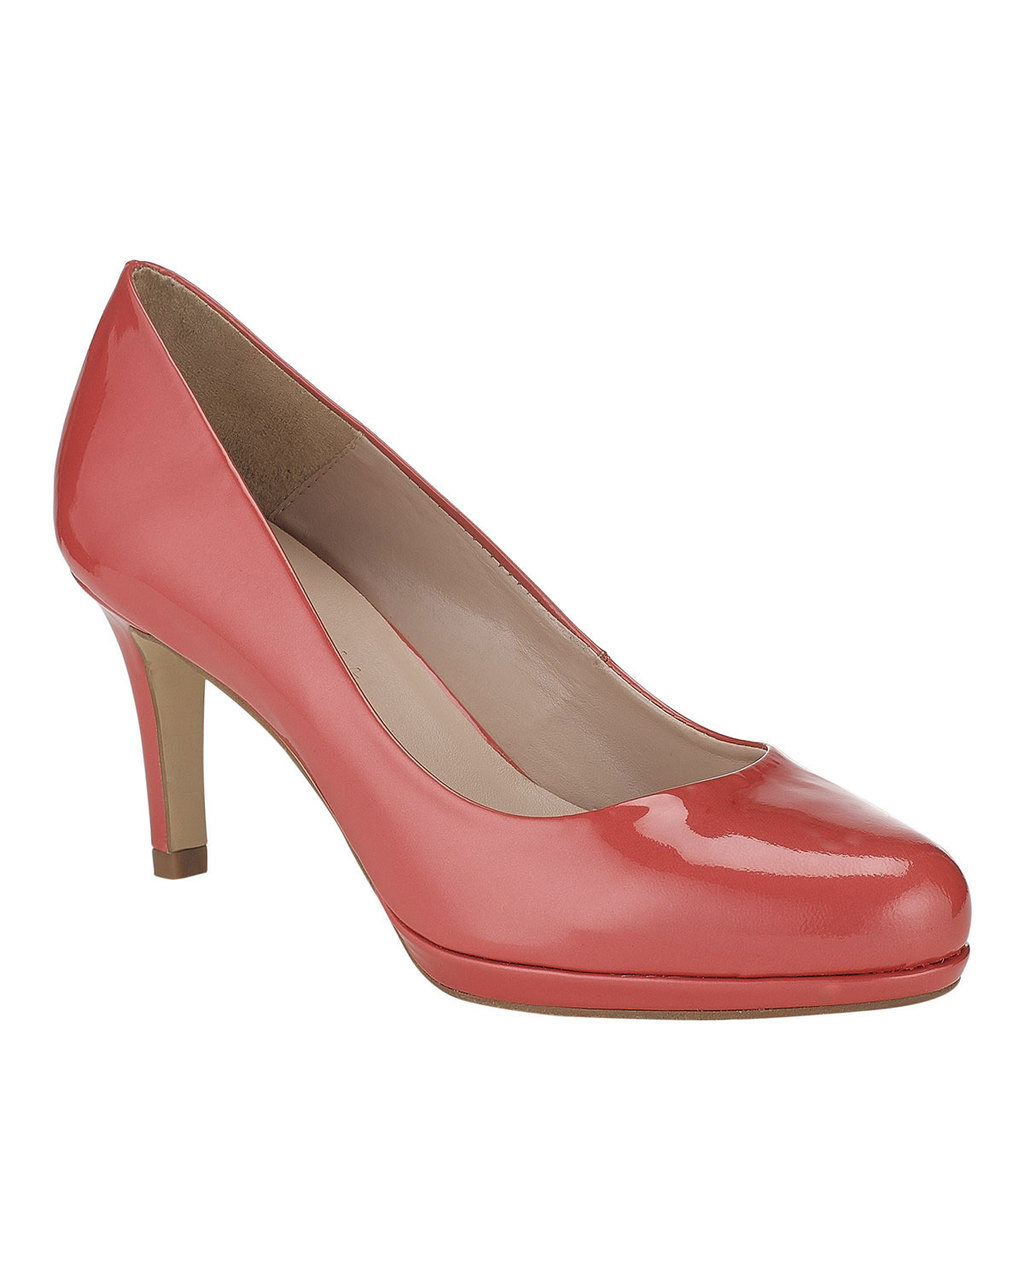 Amara Leather Court - predominant colour: pink; occasions: occasion; material: leather; heel height: mid; heel: standard; toe: round toe; style: courts; finish: patent; pattern: plain; shoe detail: platform; season: s/s 2016